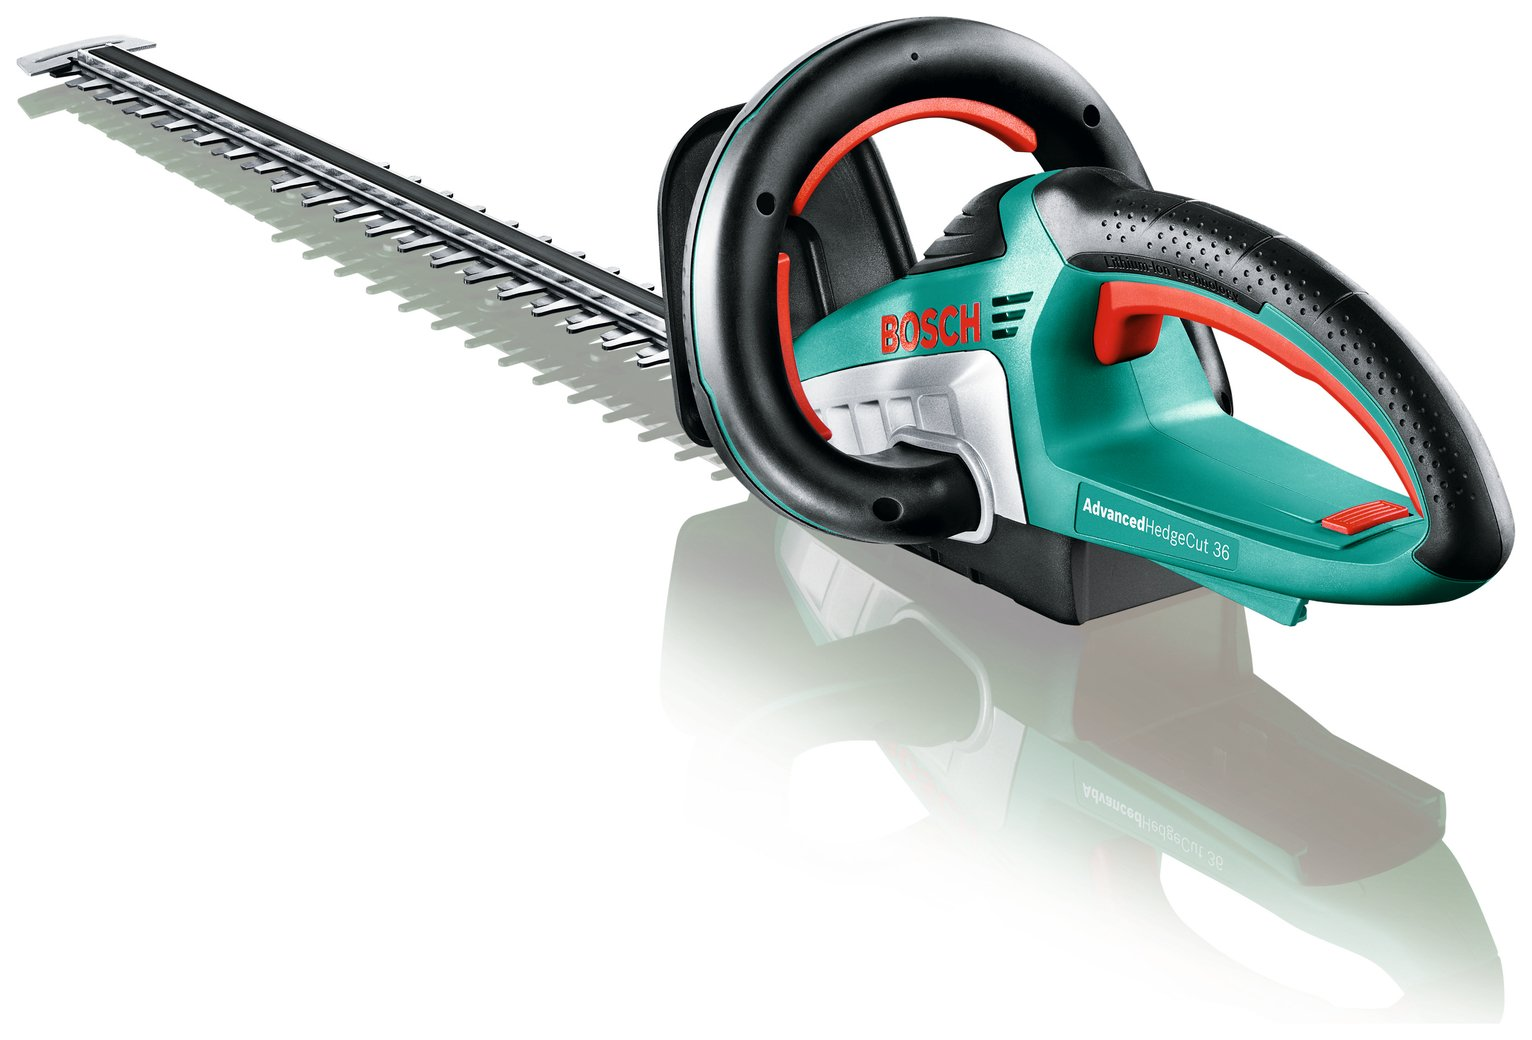 Image of Bosch AdvandedHedgeCut 36 Cordless Hedge cutter - No Battery